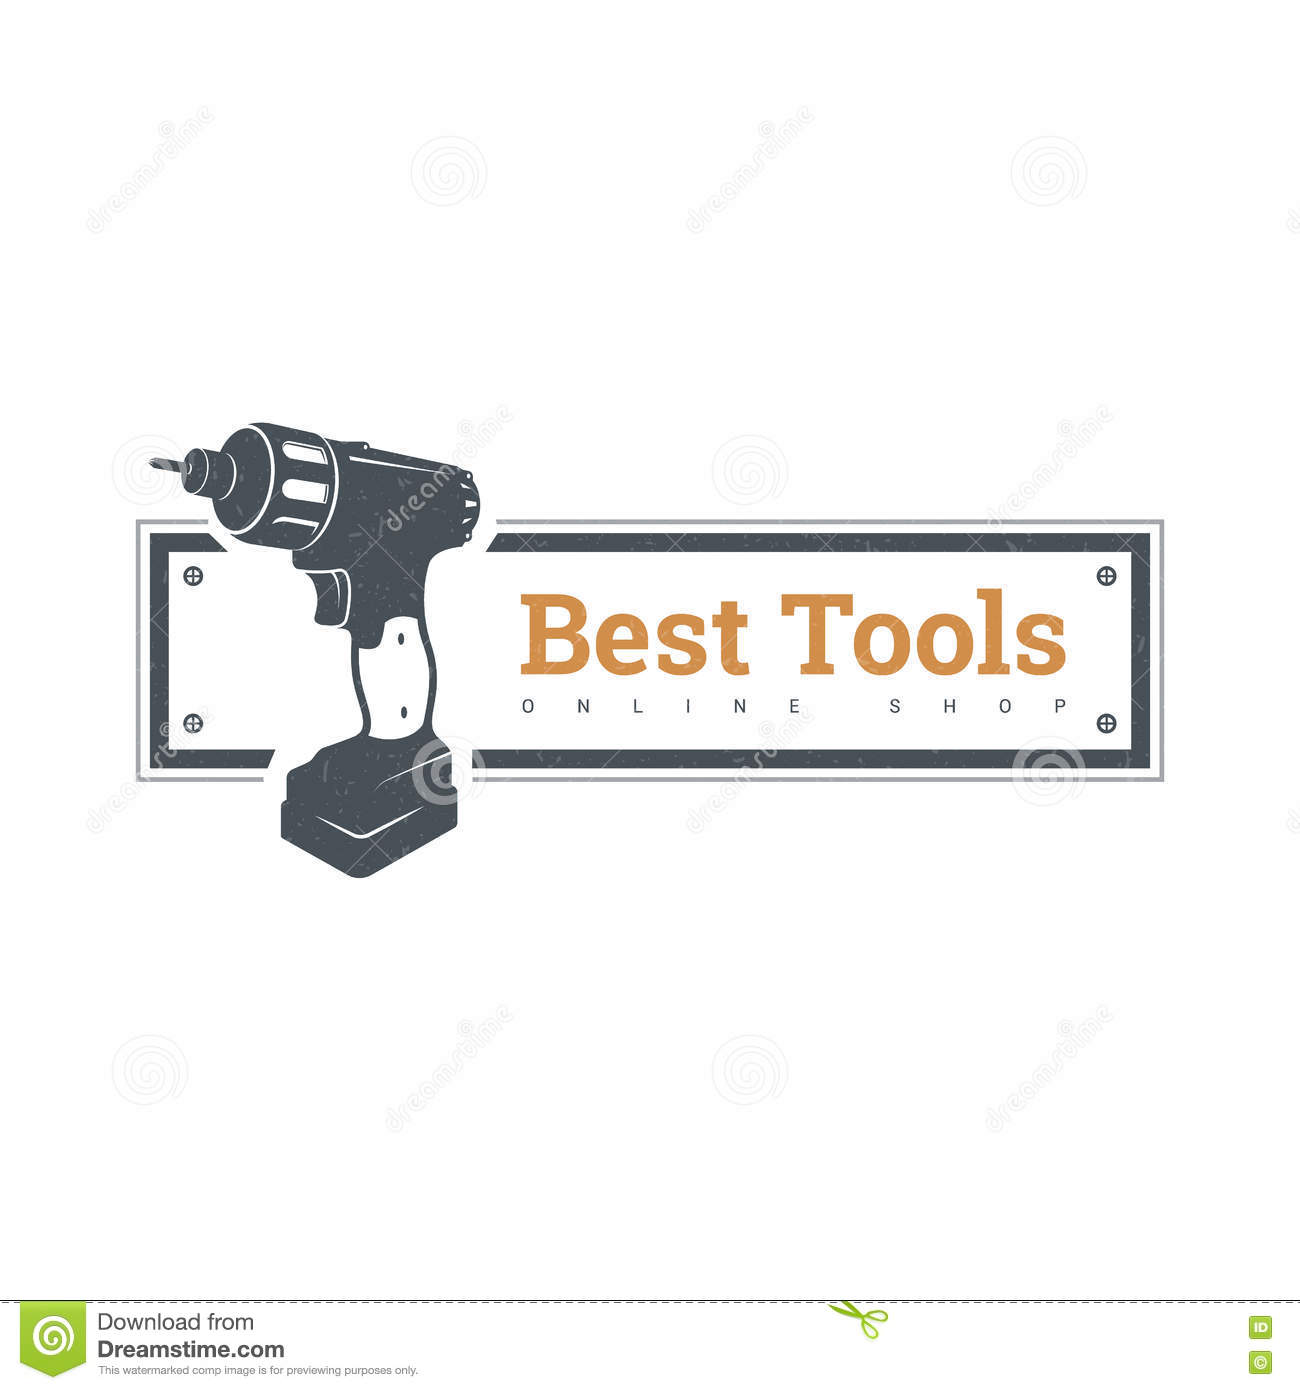 Drill Vector Hand Tool Flat Electro Tools Electric Screwdriver Bit Icon Logo Design Elements Stock Vector Illustration Of Poster Icon 80228853